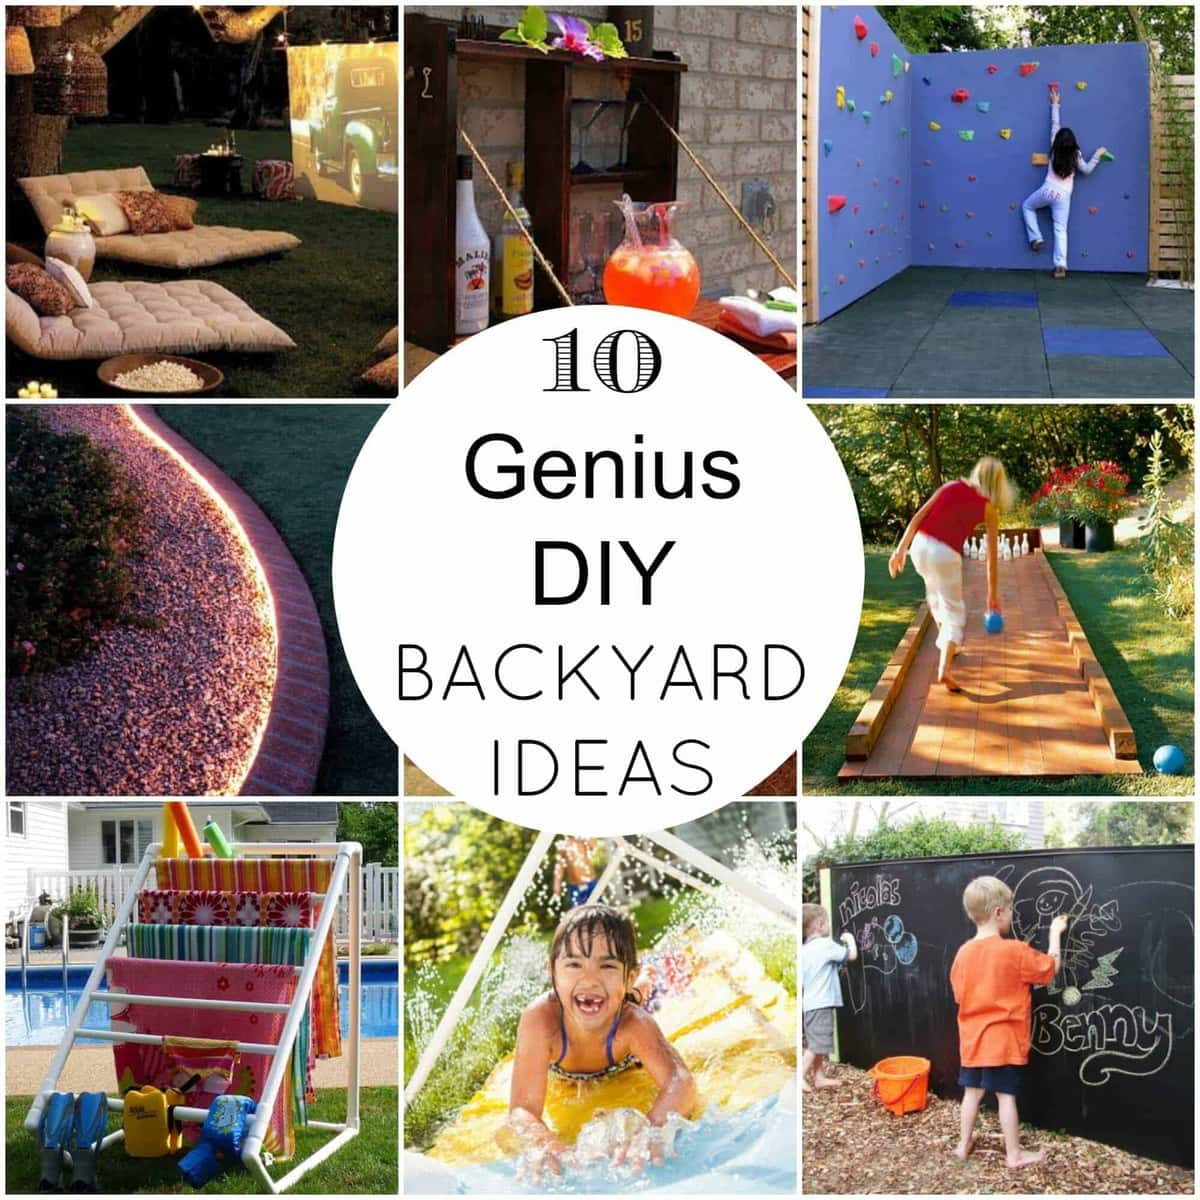 33 Amazing Ideas That Will Make Your House Awesome: Genius DIY Backyard Ideas That Will Transform Your Yard